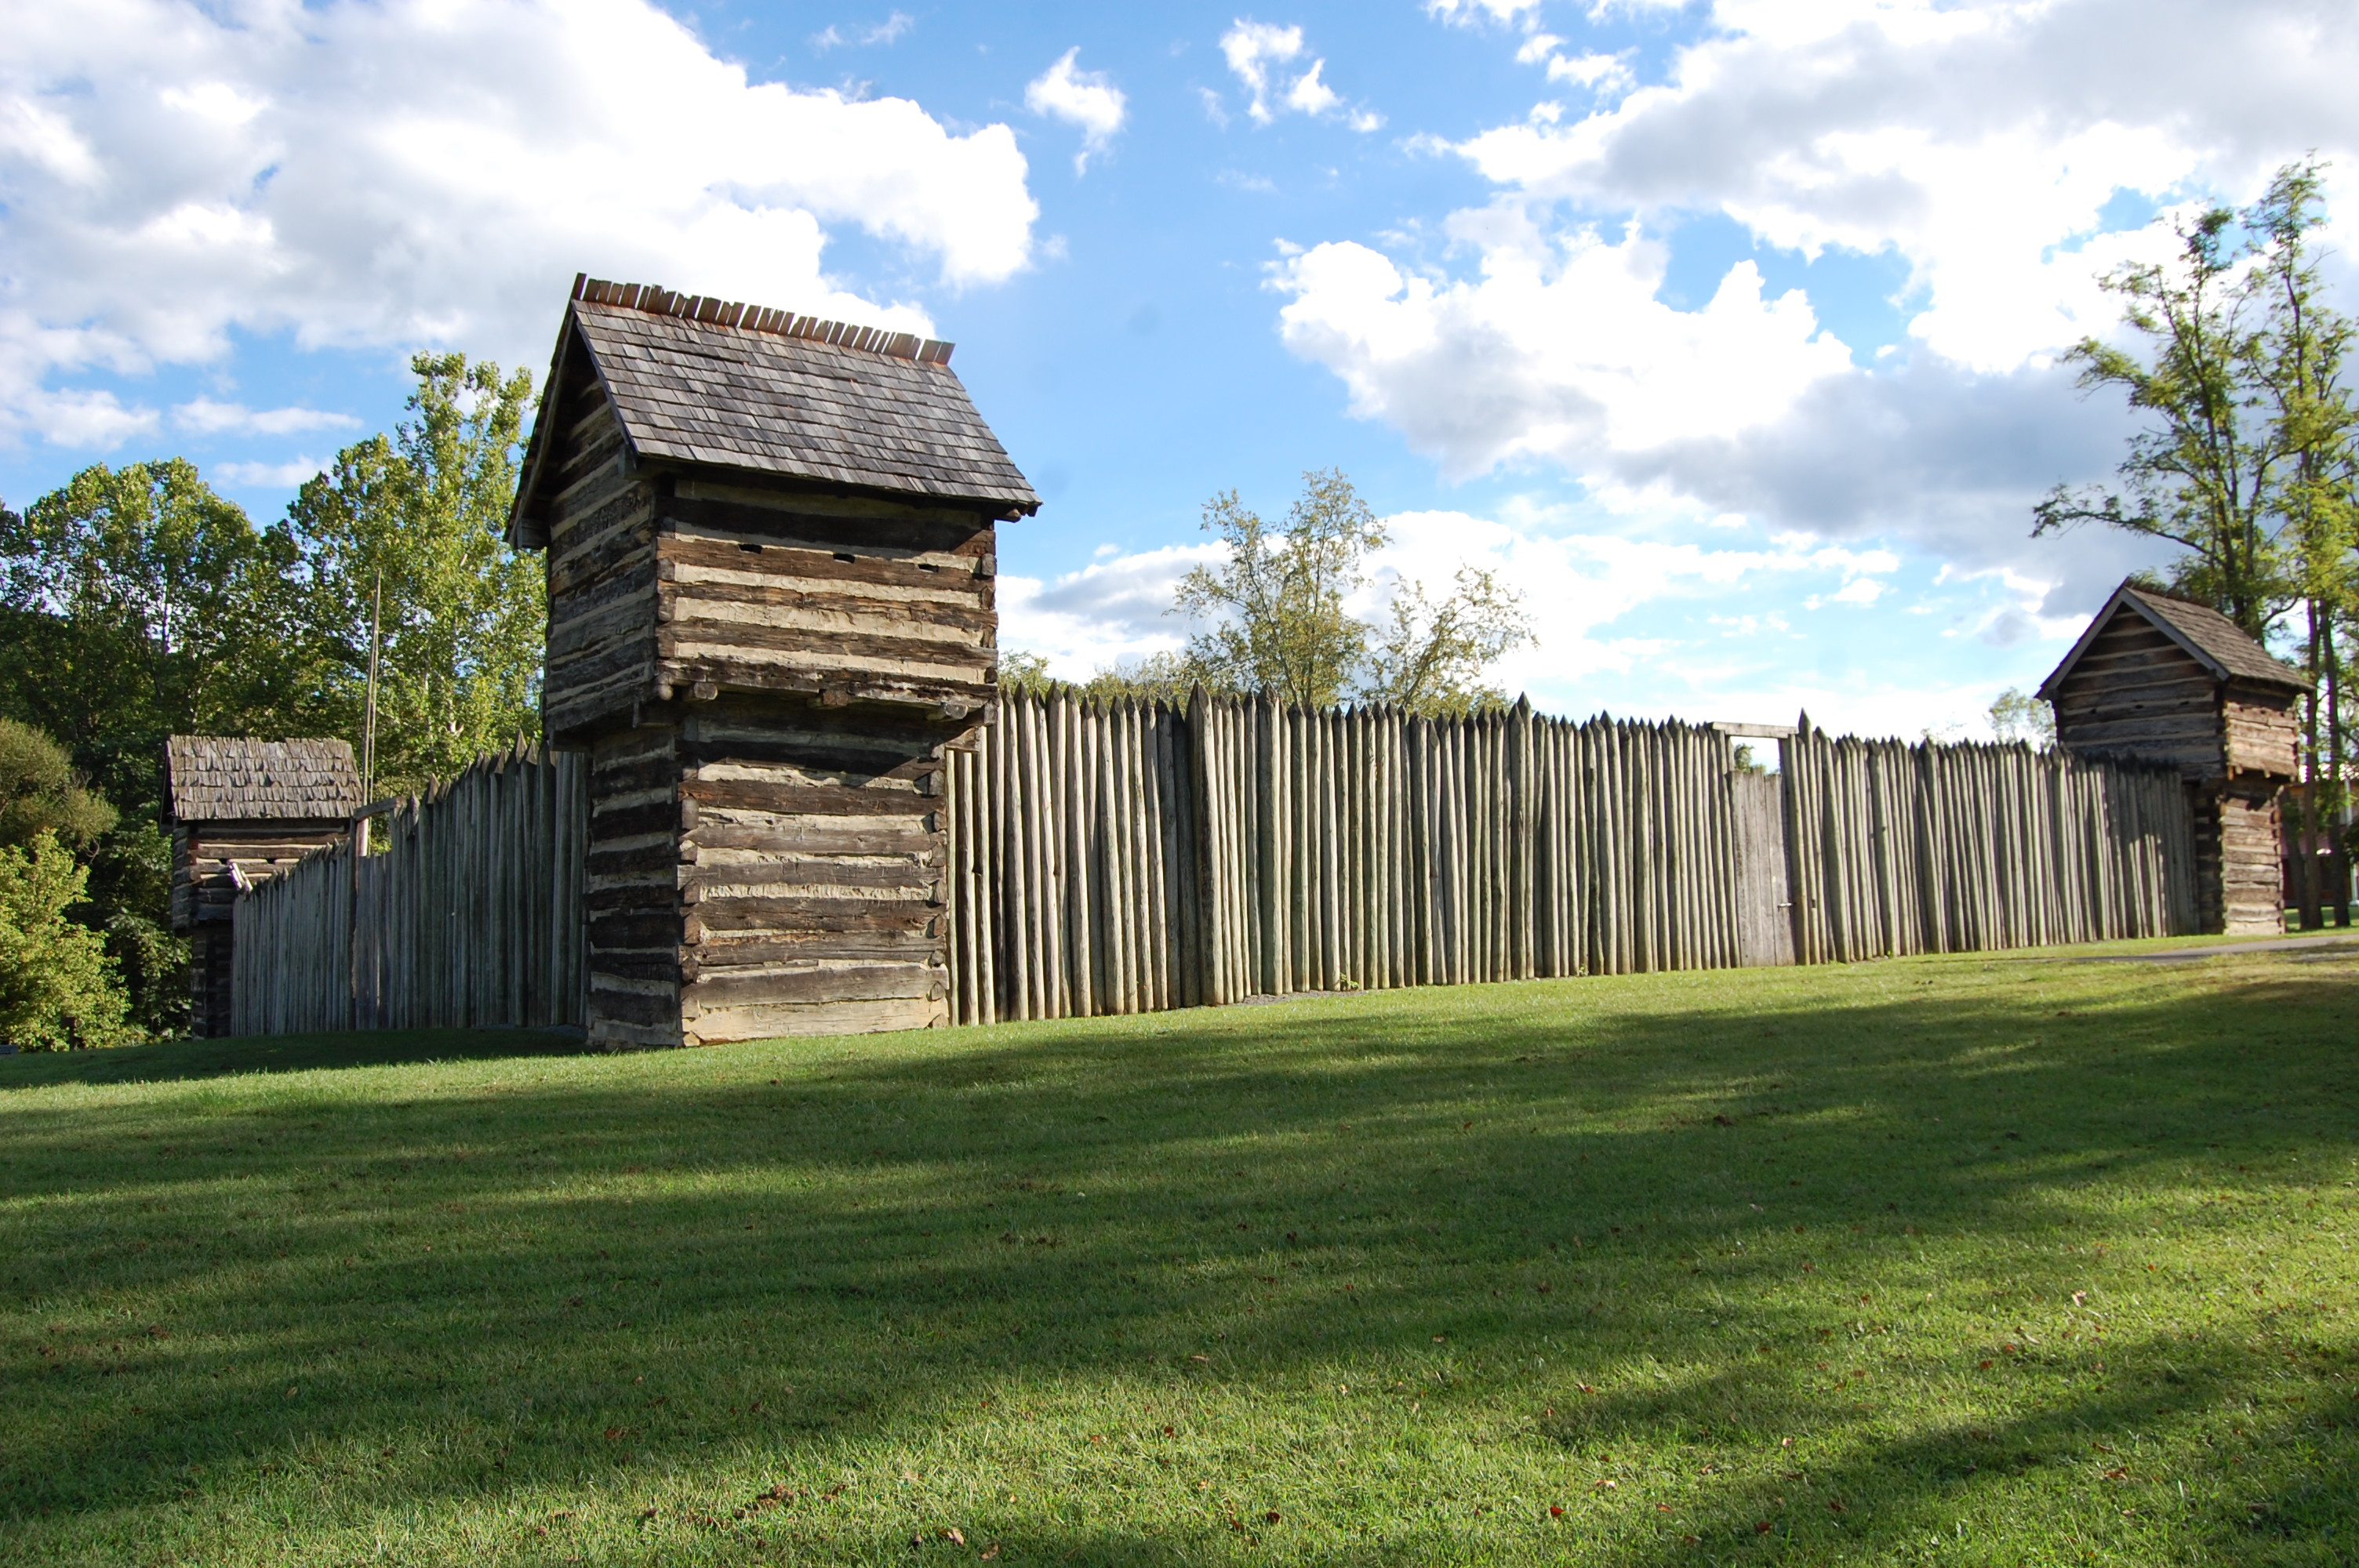 While the original fort no longer exists, it is believed to have resembled Prickett's Fort which is located on the Monongahela River.